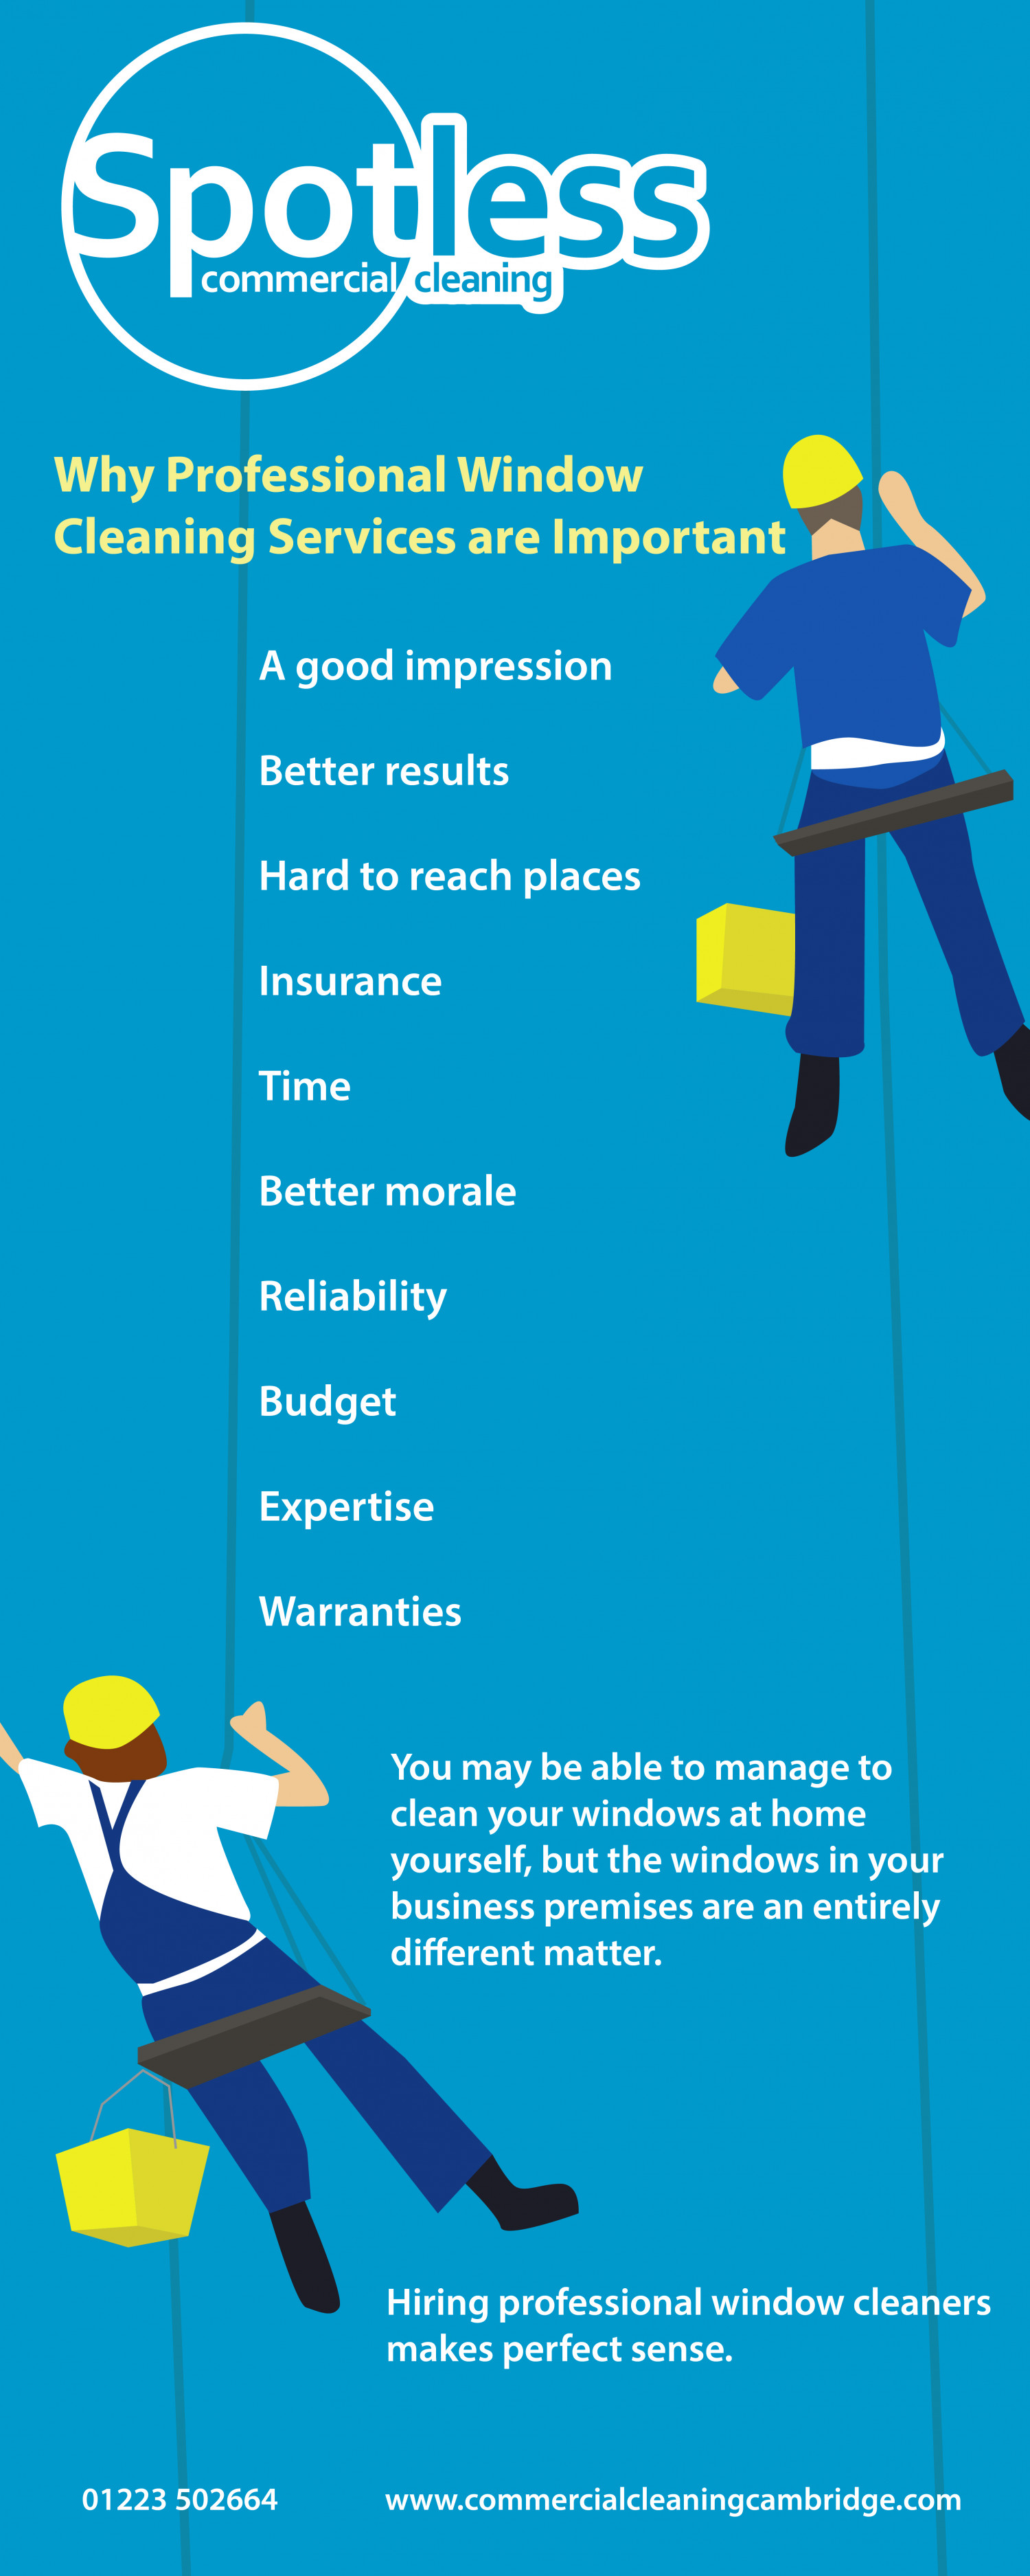 Why Professional Window Cleaning Services are Important Infographic